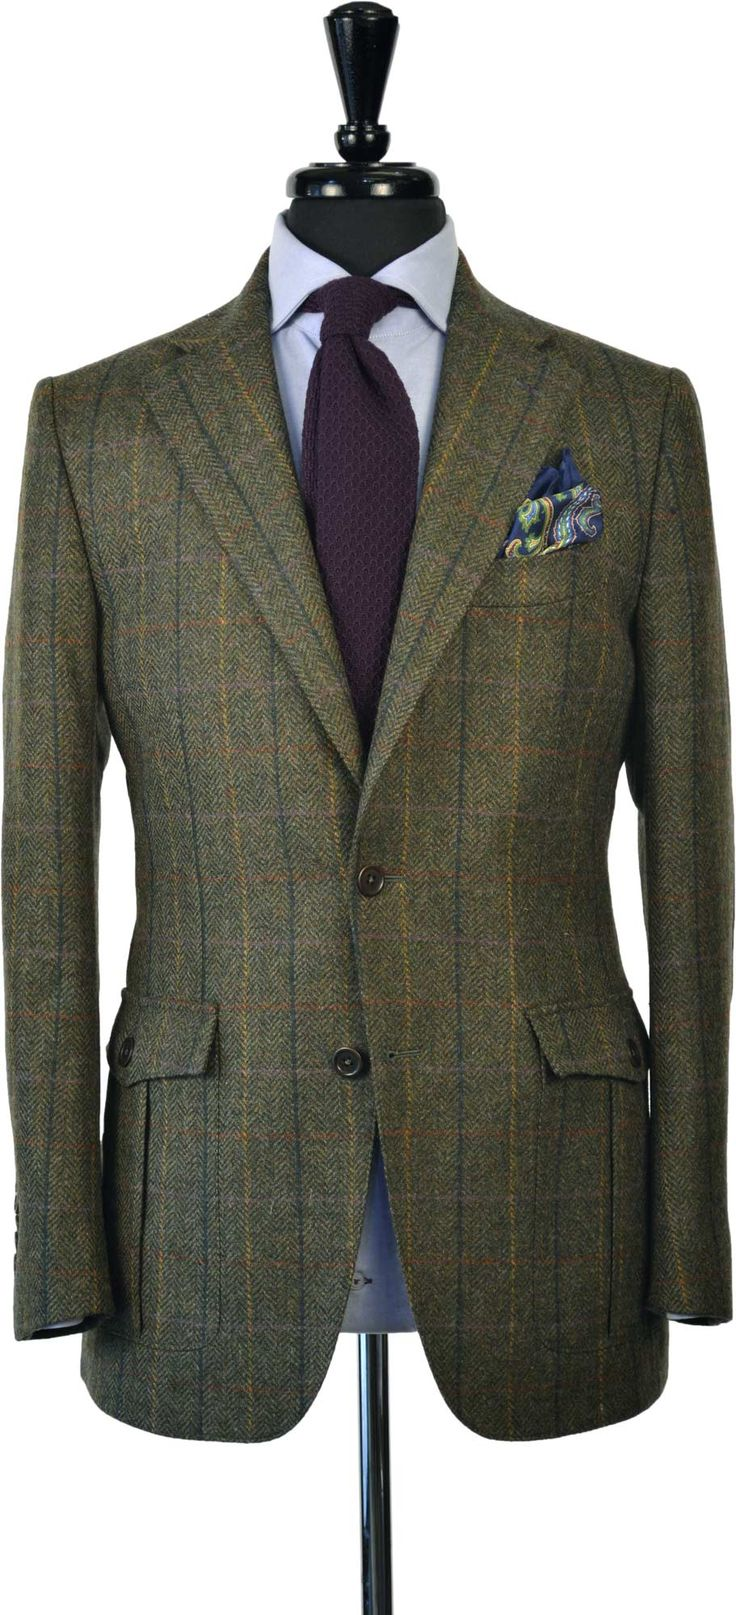 Tweed Hunting Jacket- British inspired, by Beckett & Robb. Available now at www.BeckettRobb.com